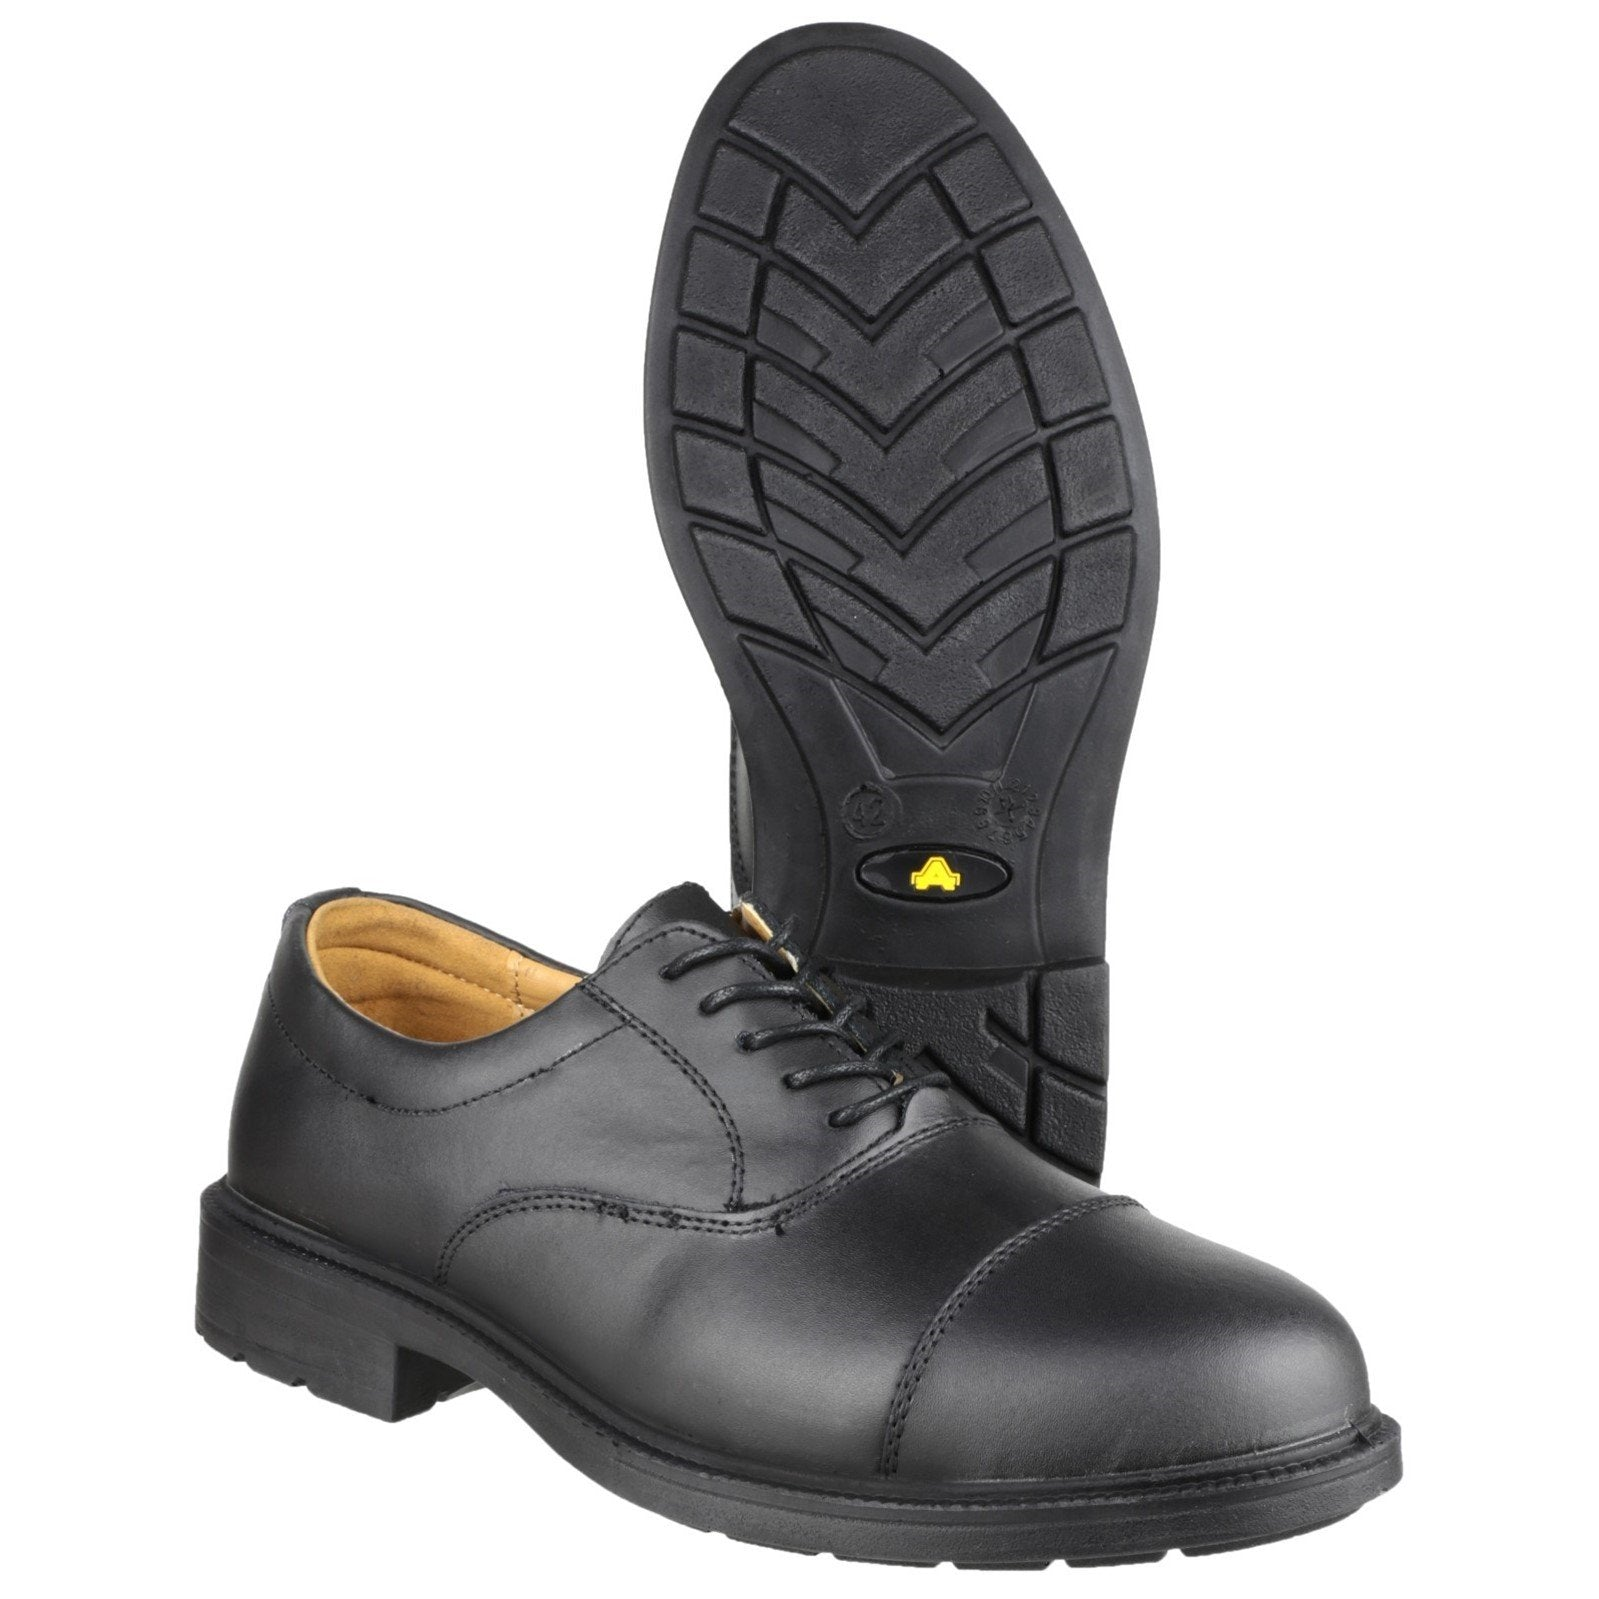 Amblers Oxford Safety Shoes